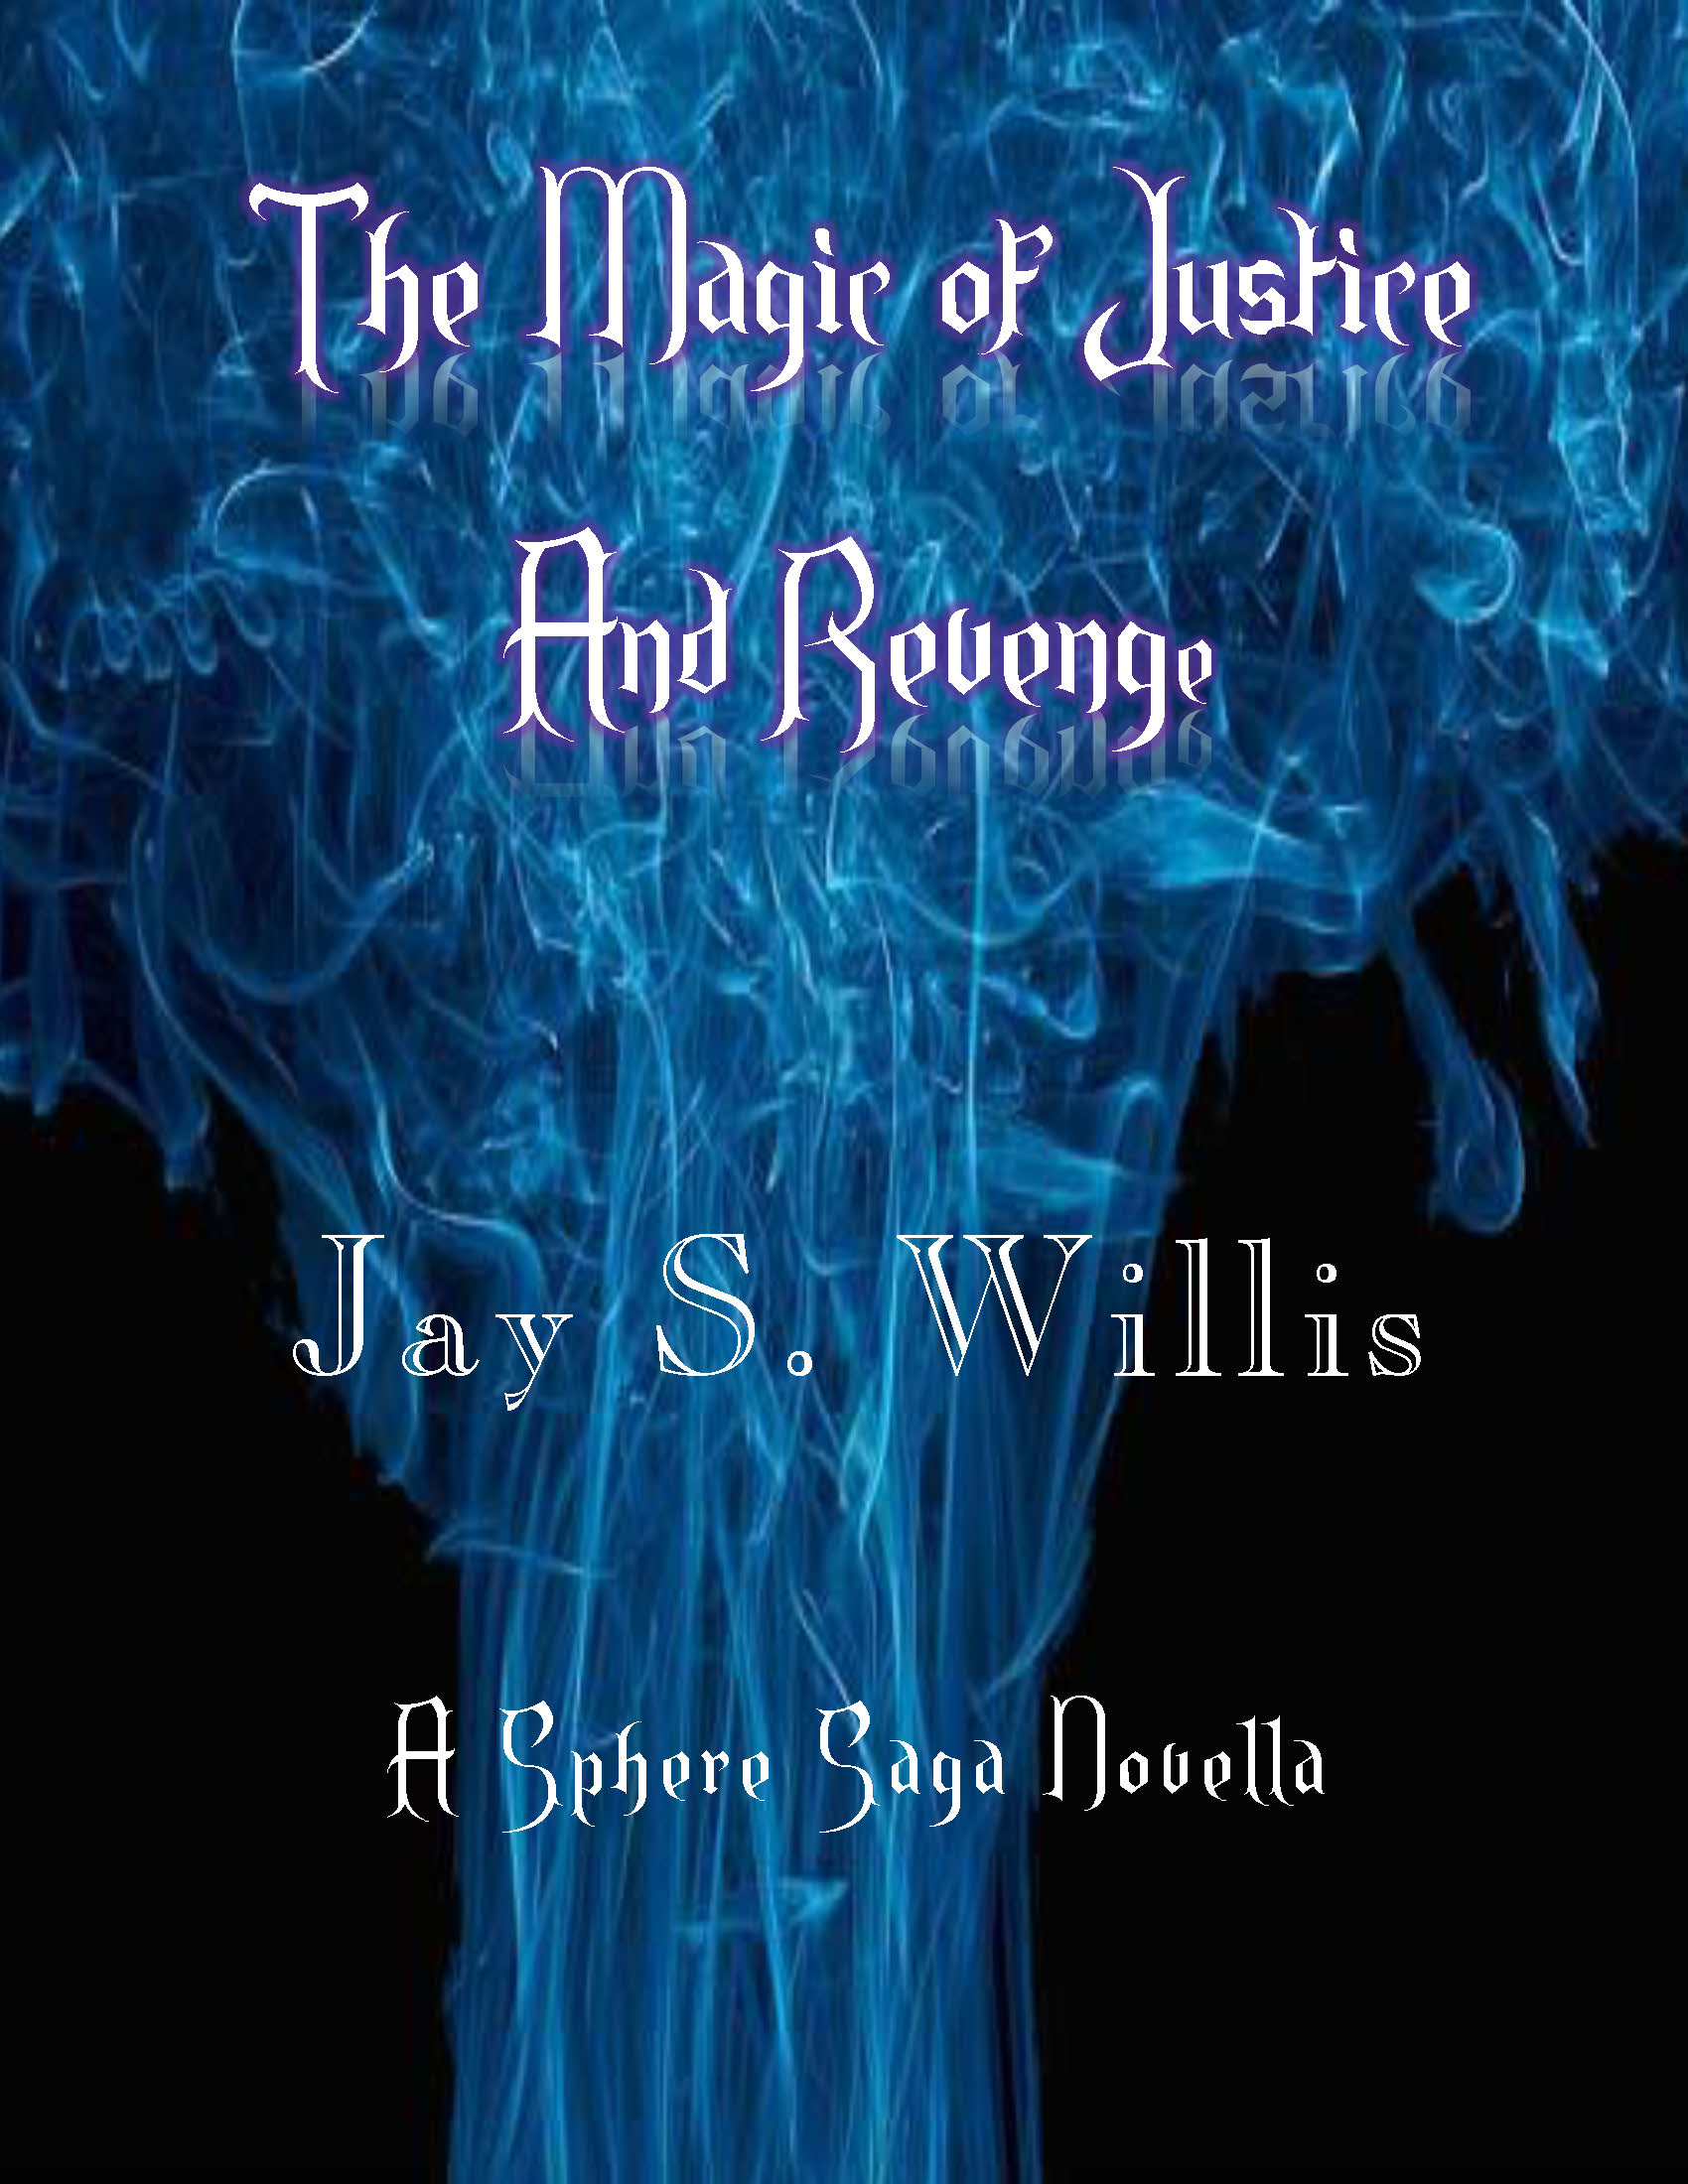 The Magic of Justice and Revenge by Jay S. Willis